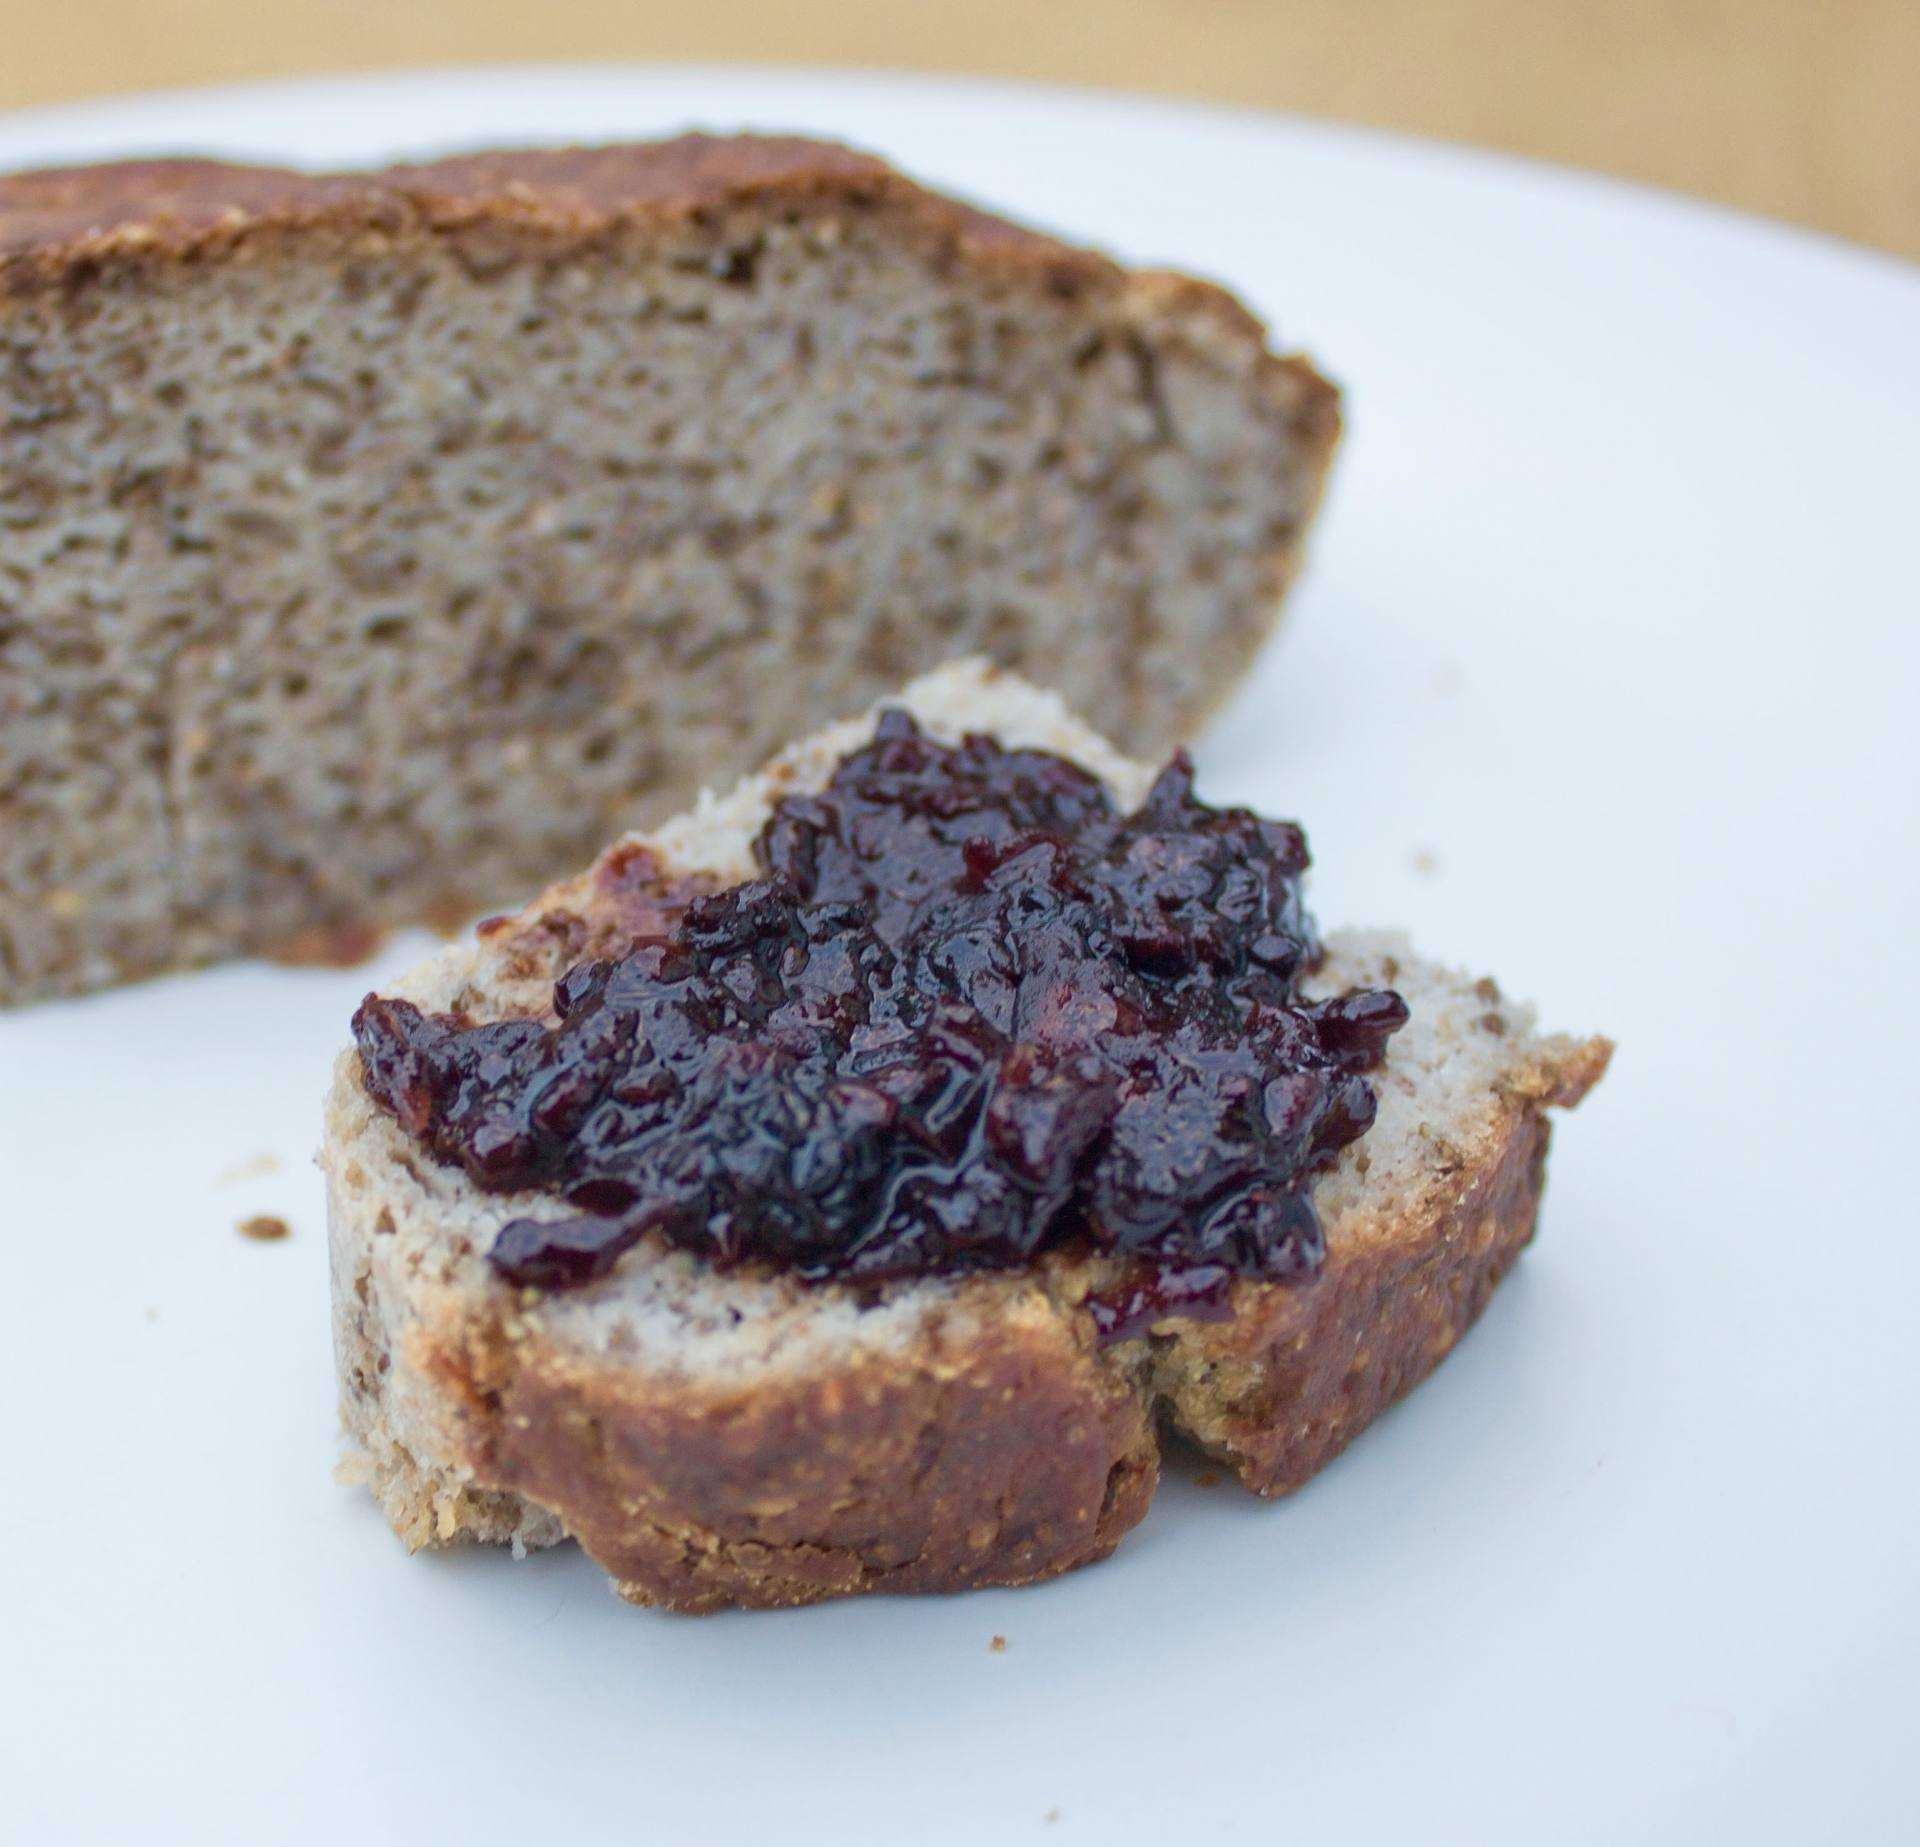 3 Child Friendly Vegan Recipes for Desert, buckwheat bread with blackberry and apple cocunet jam 1%, lifestyle%